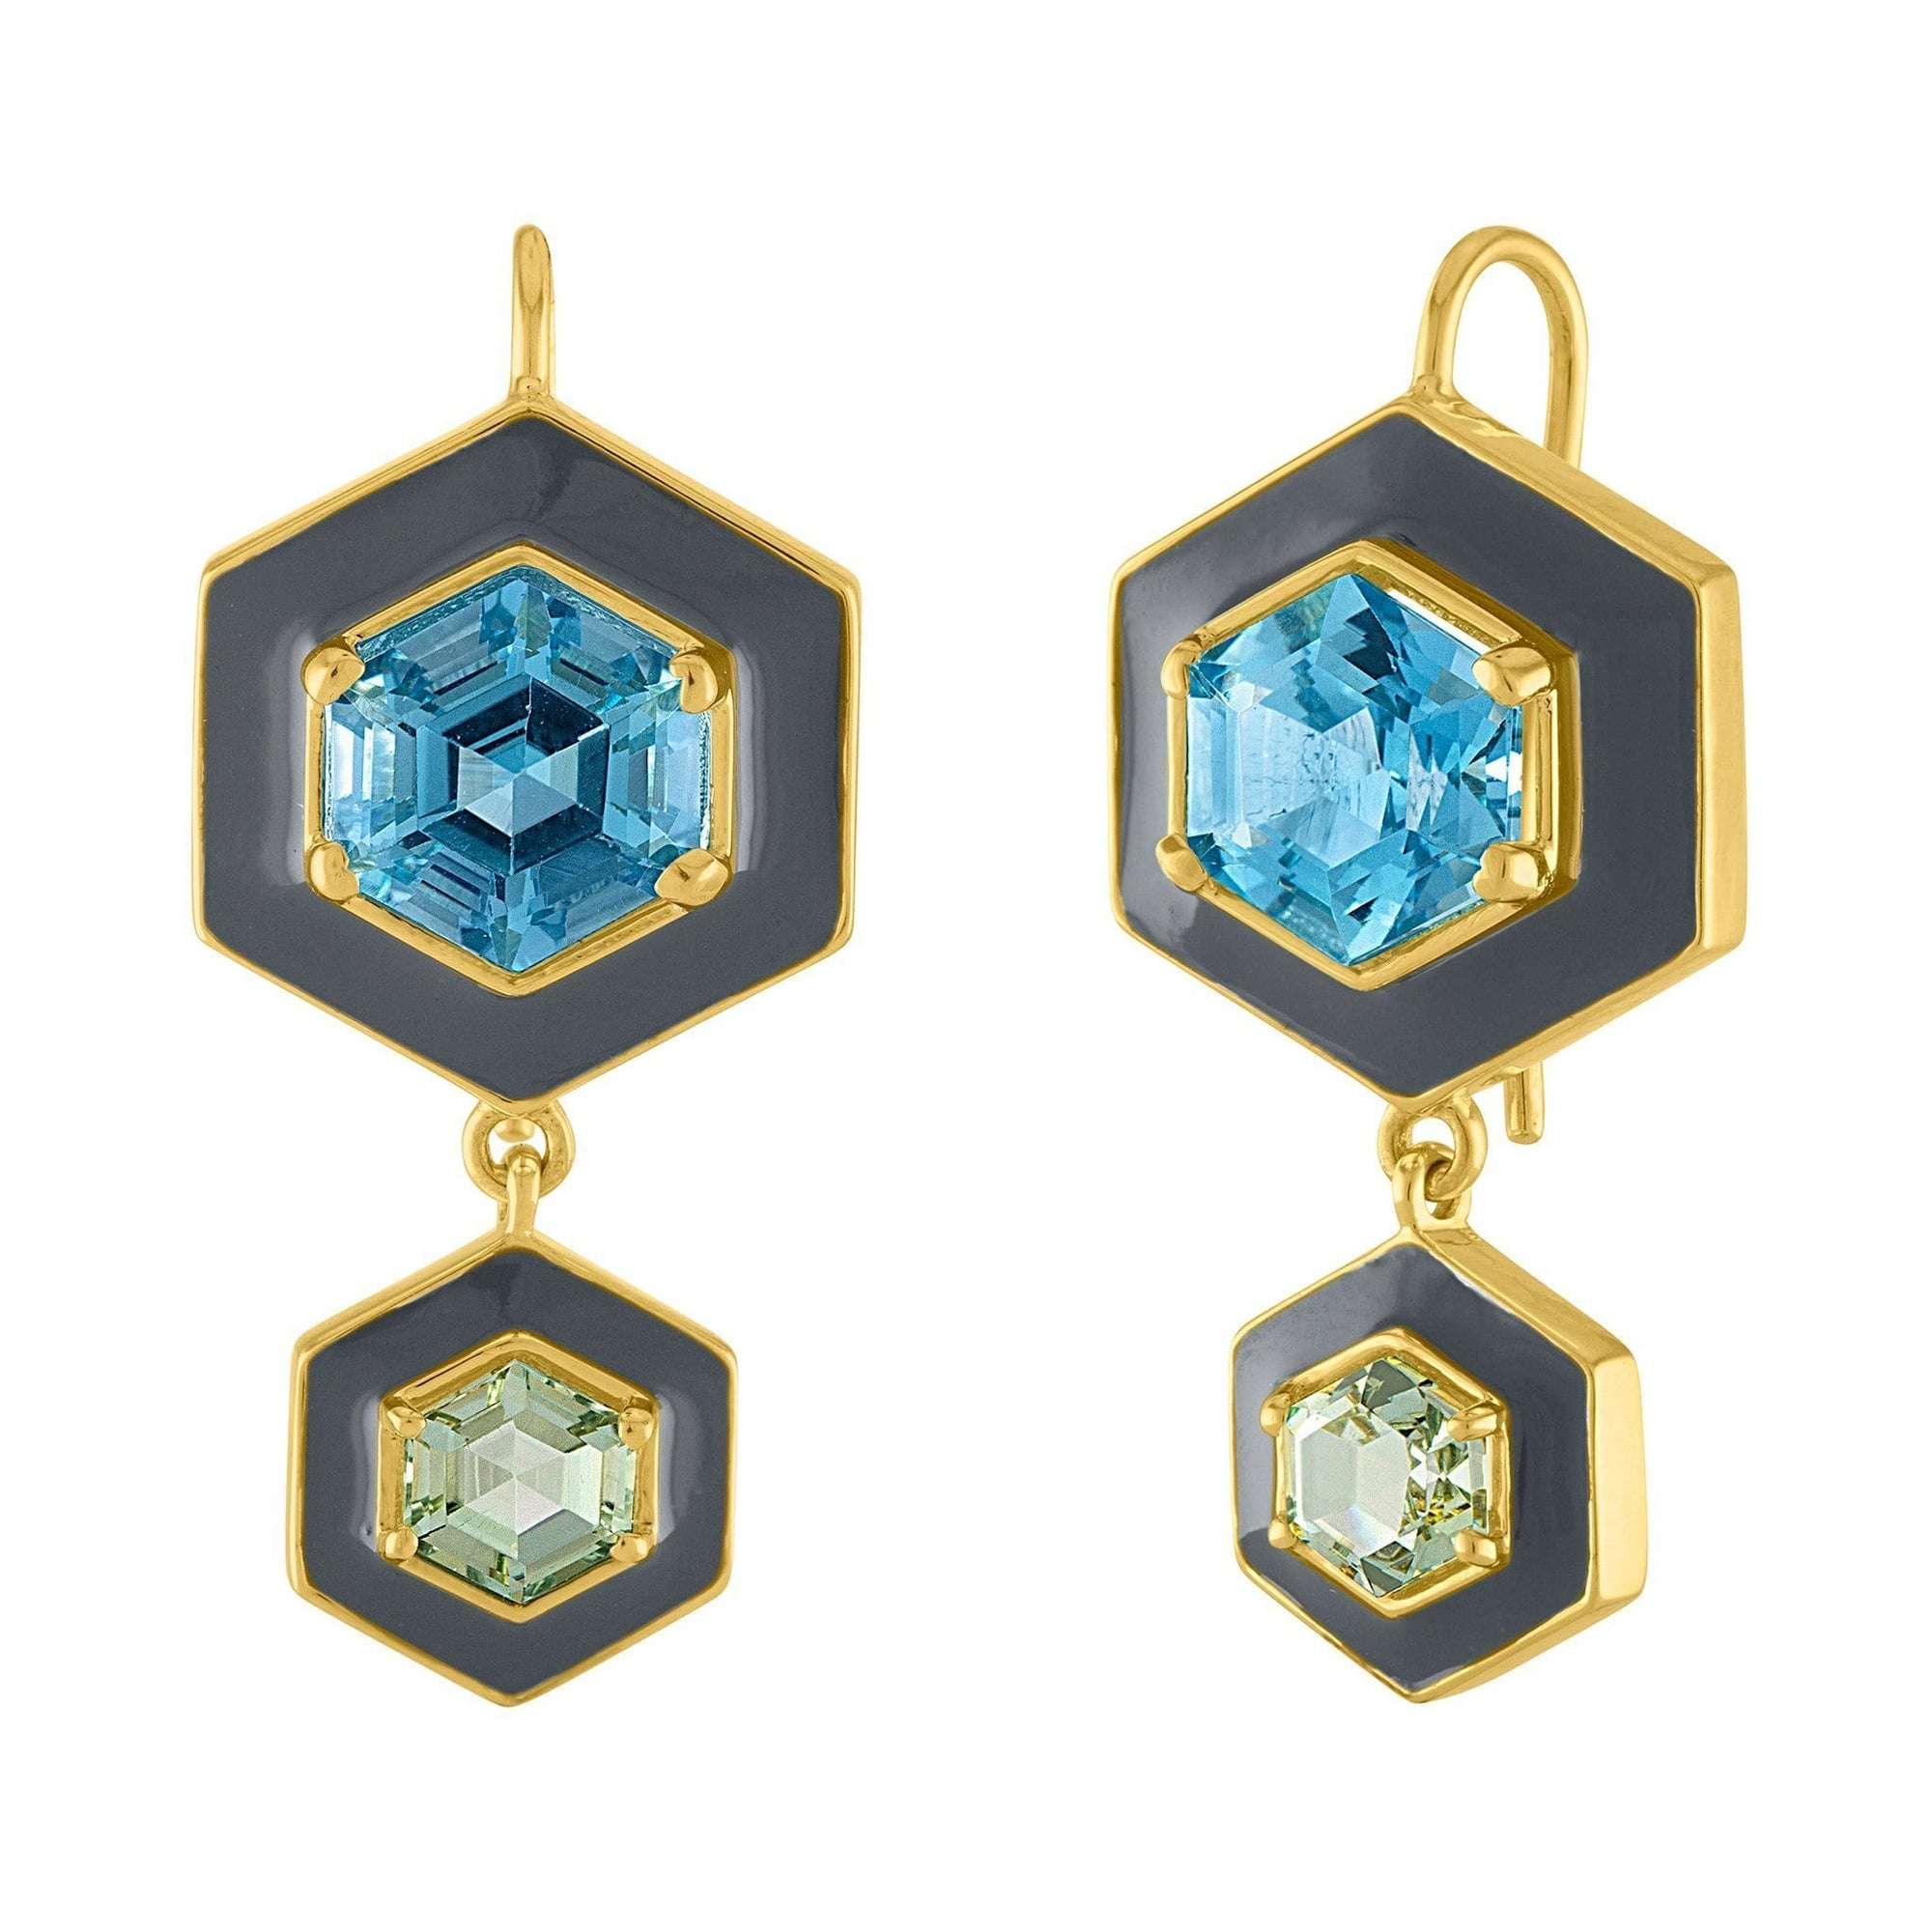 Glitter Enamel Earrings - 18k Gold, Blue Topaz,GreenTopaz, Enamel